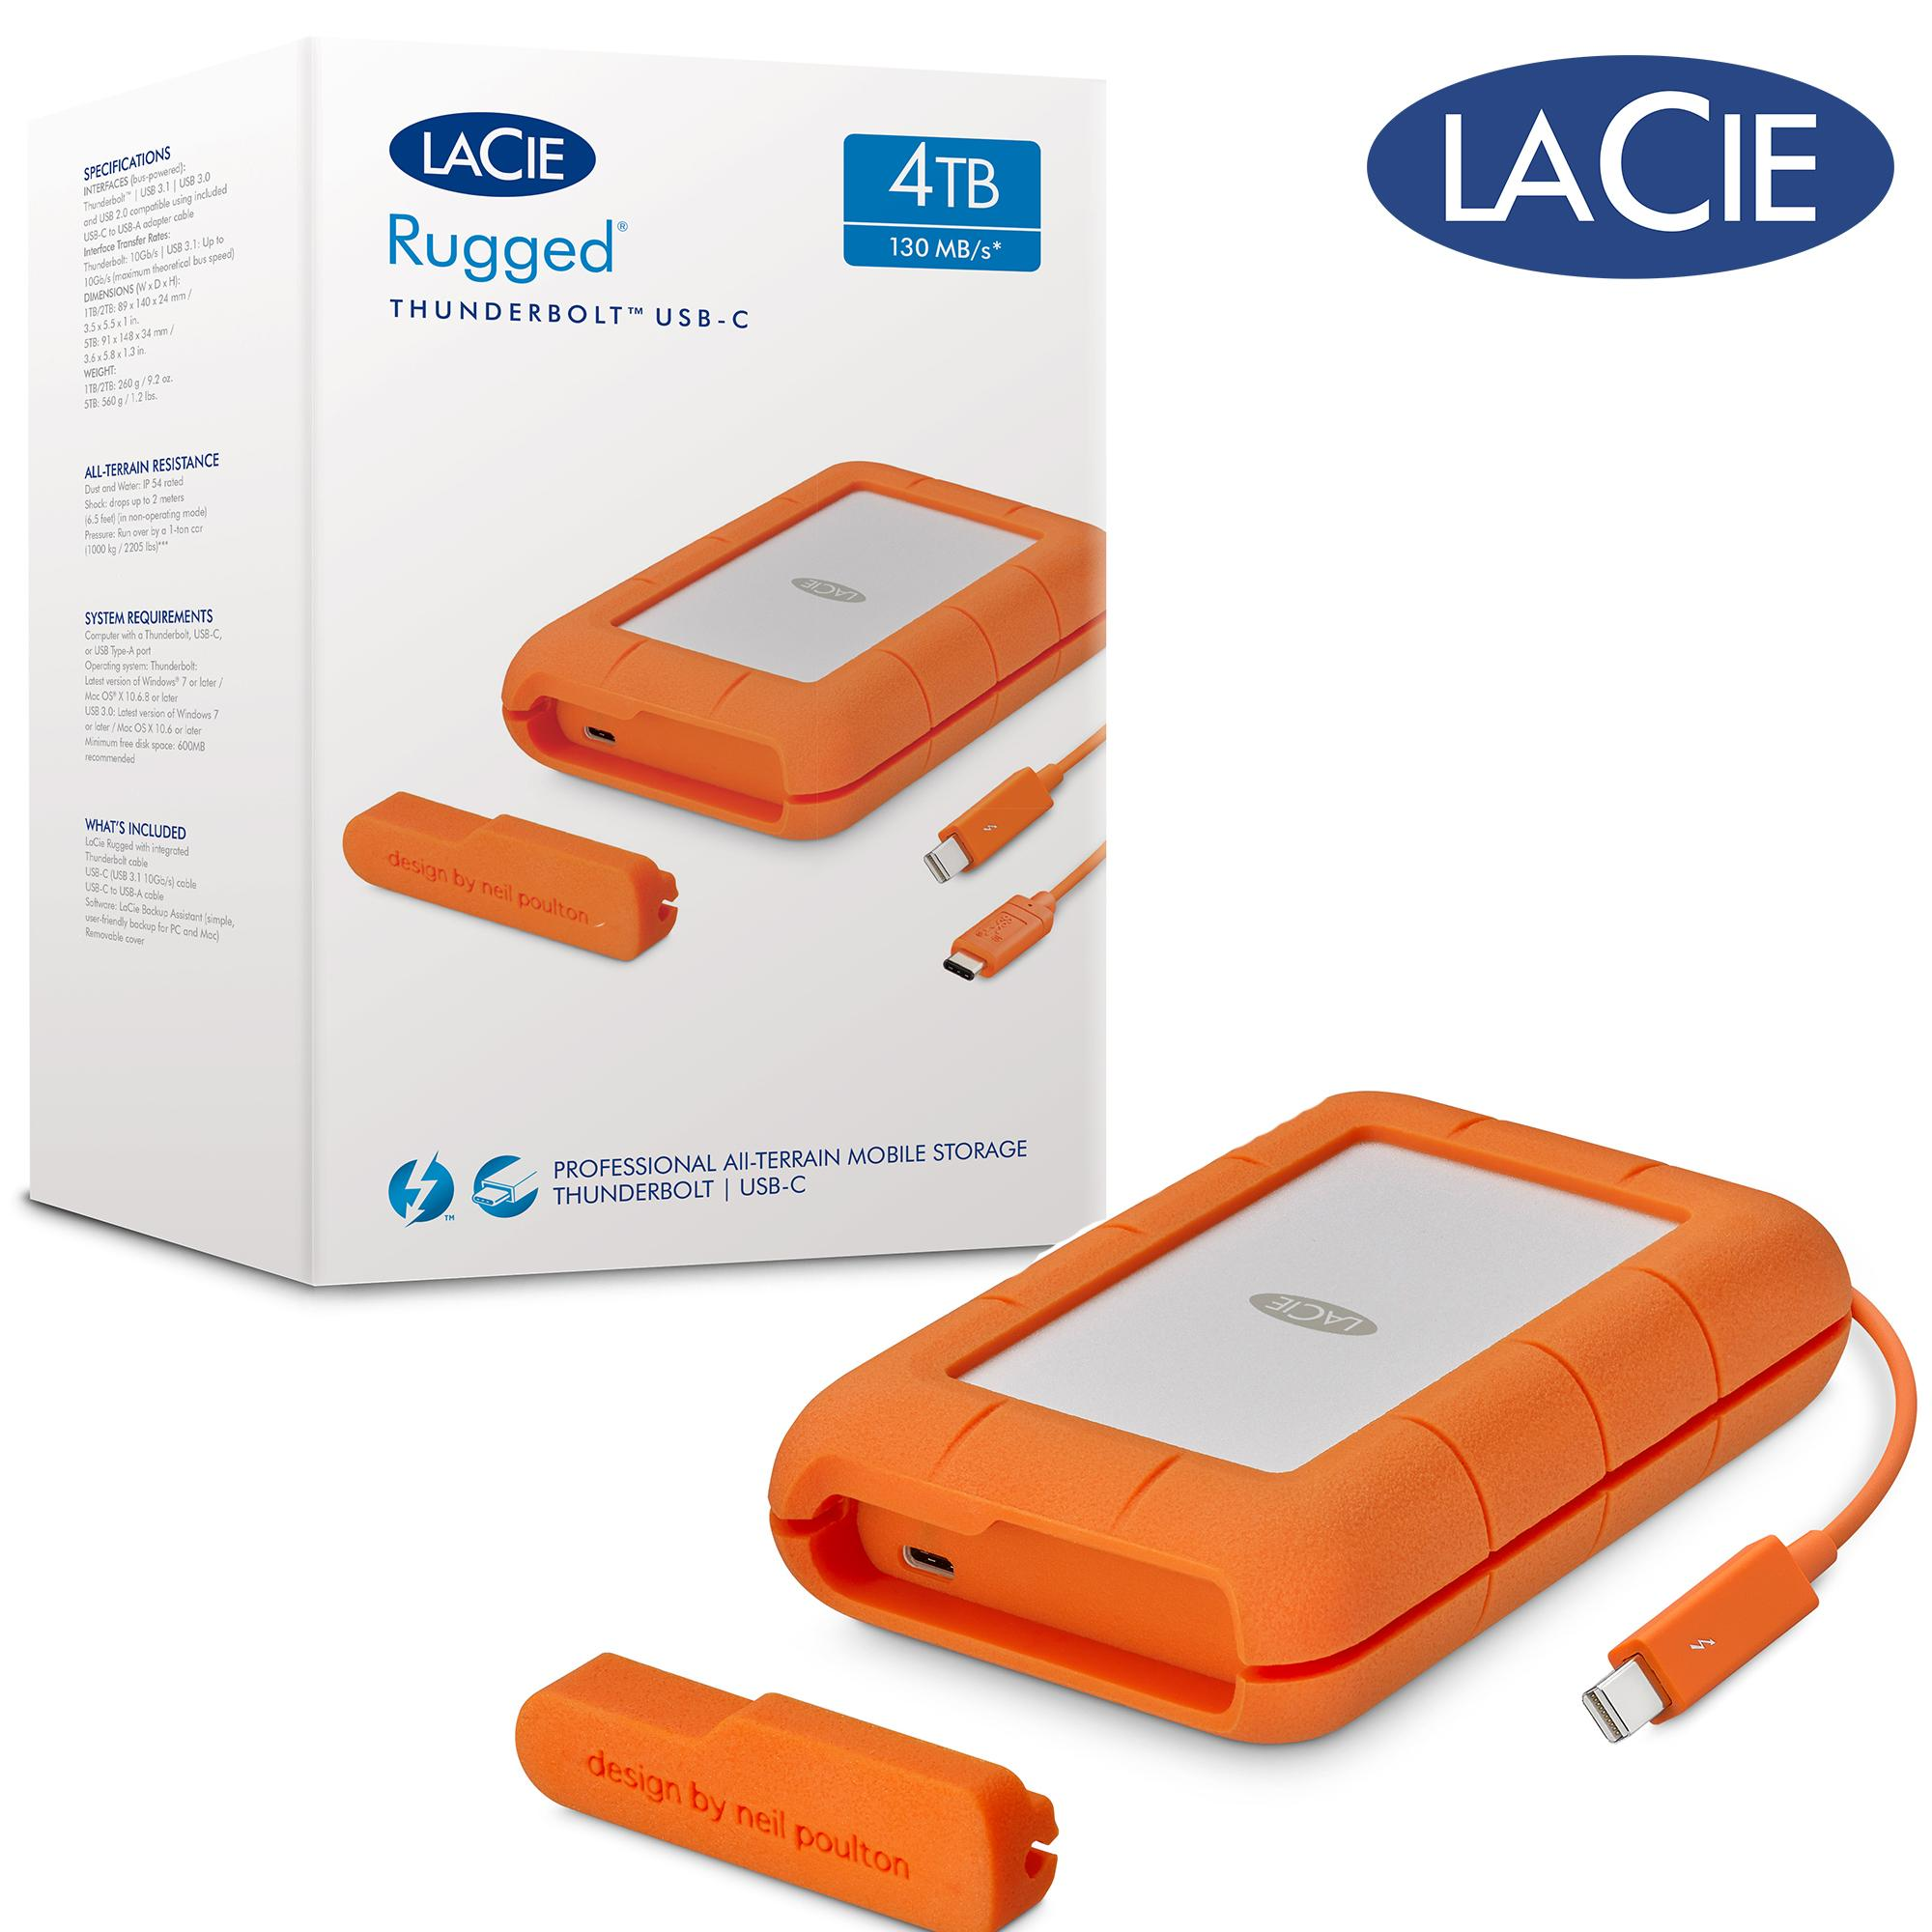 Lacie 4tb Rugged Thunderbolt Usb C